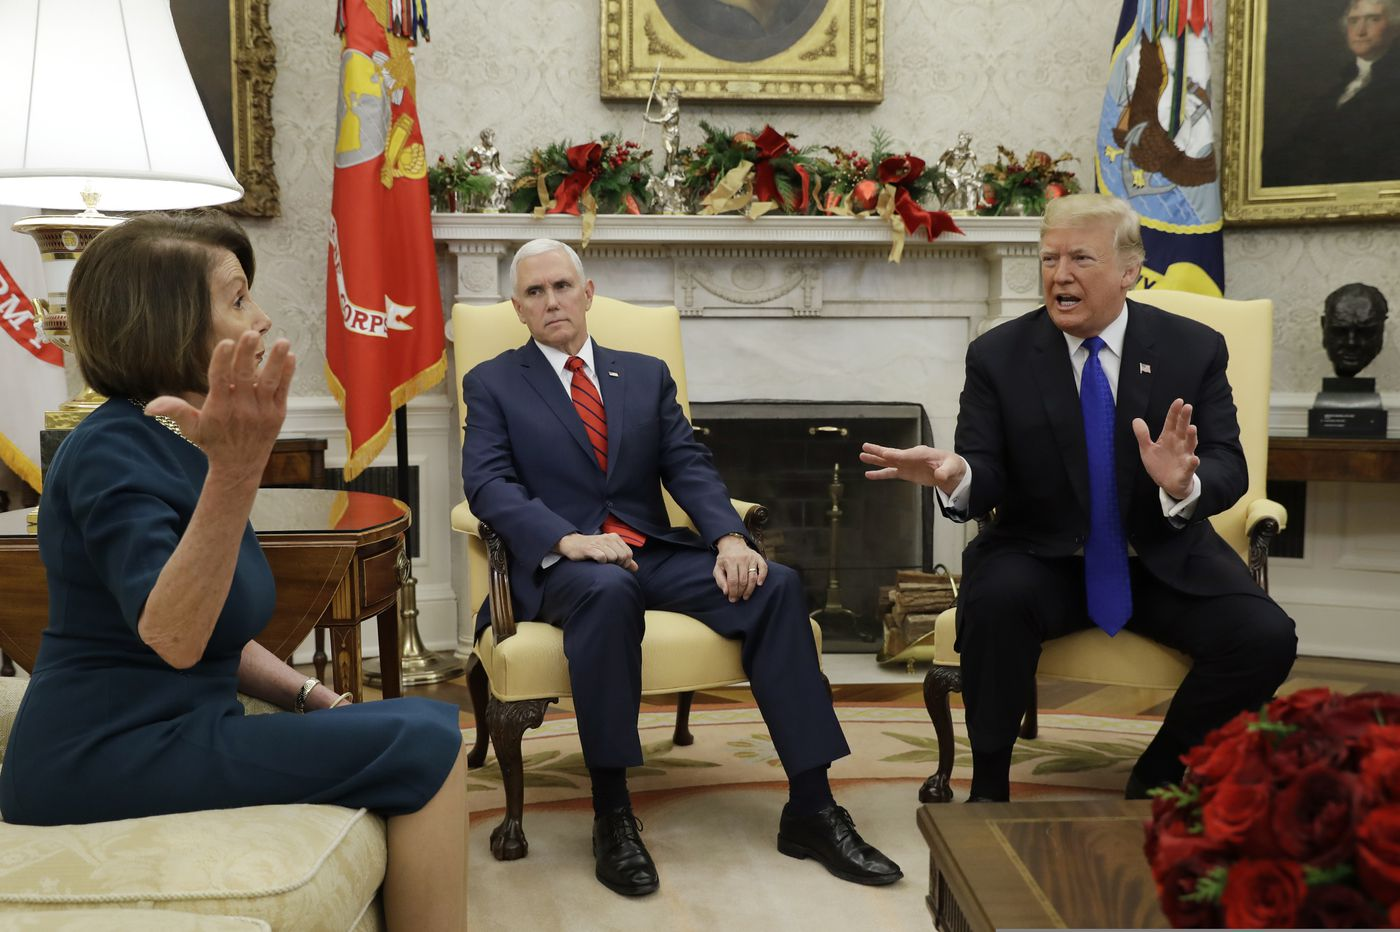 Trump fights with Pelosi and Schumer at White House over border wall